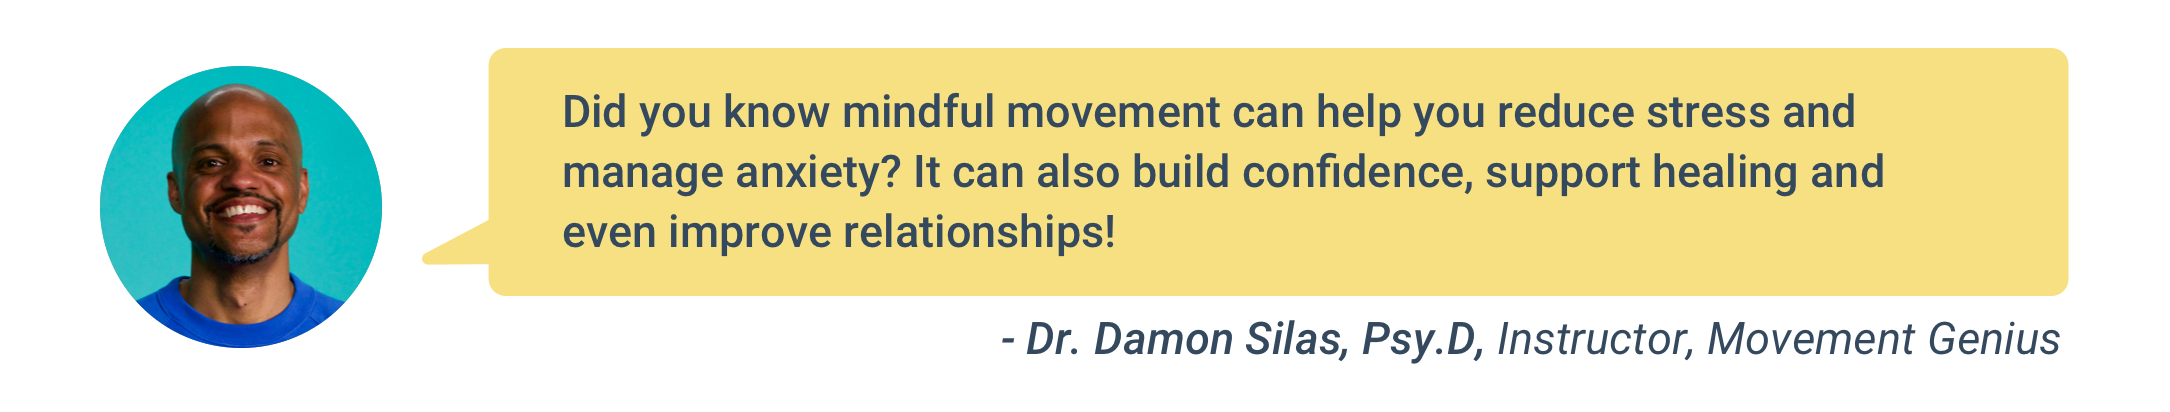 A picture of Dr. Damon Silas, Psy.D, Instructor at Movement Genius with a speech bubble that reads: